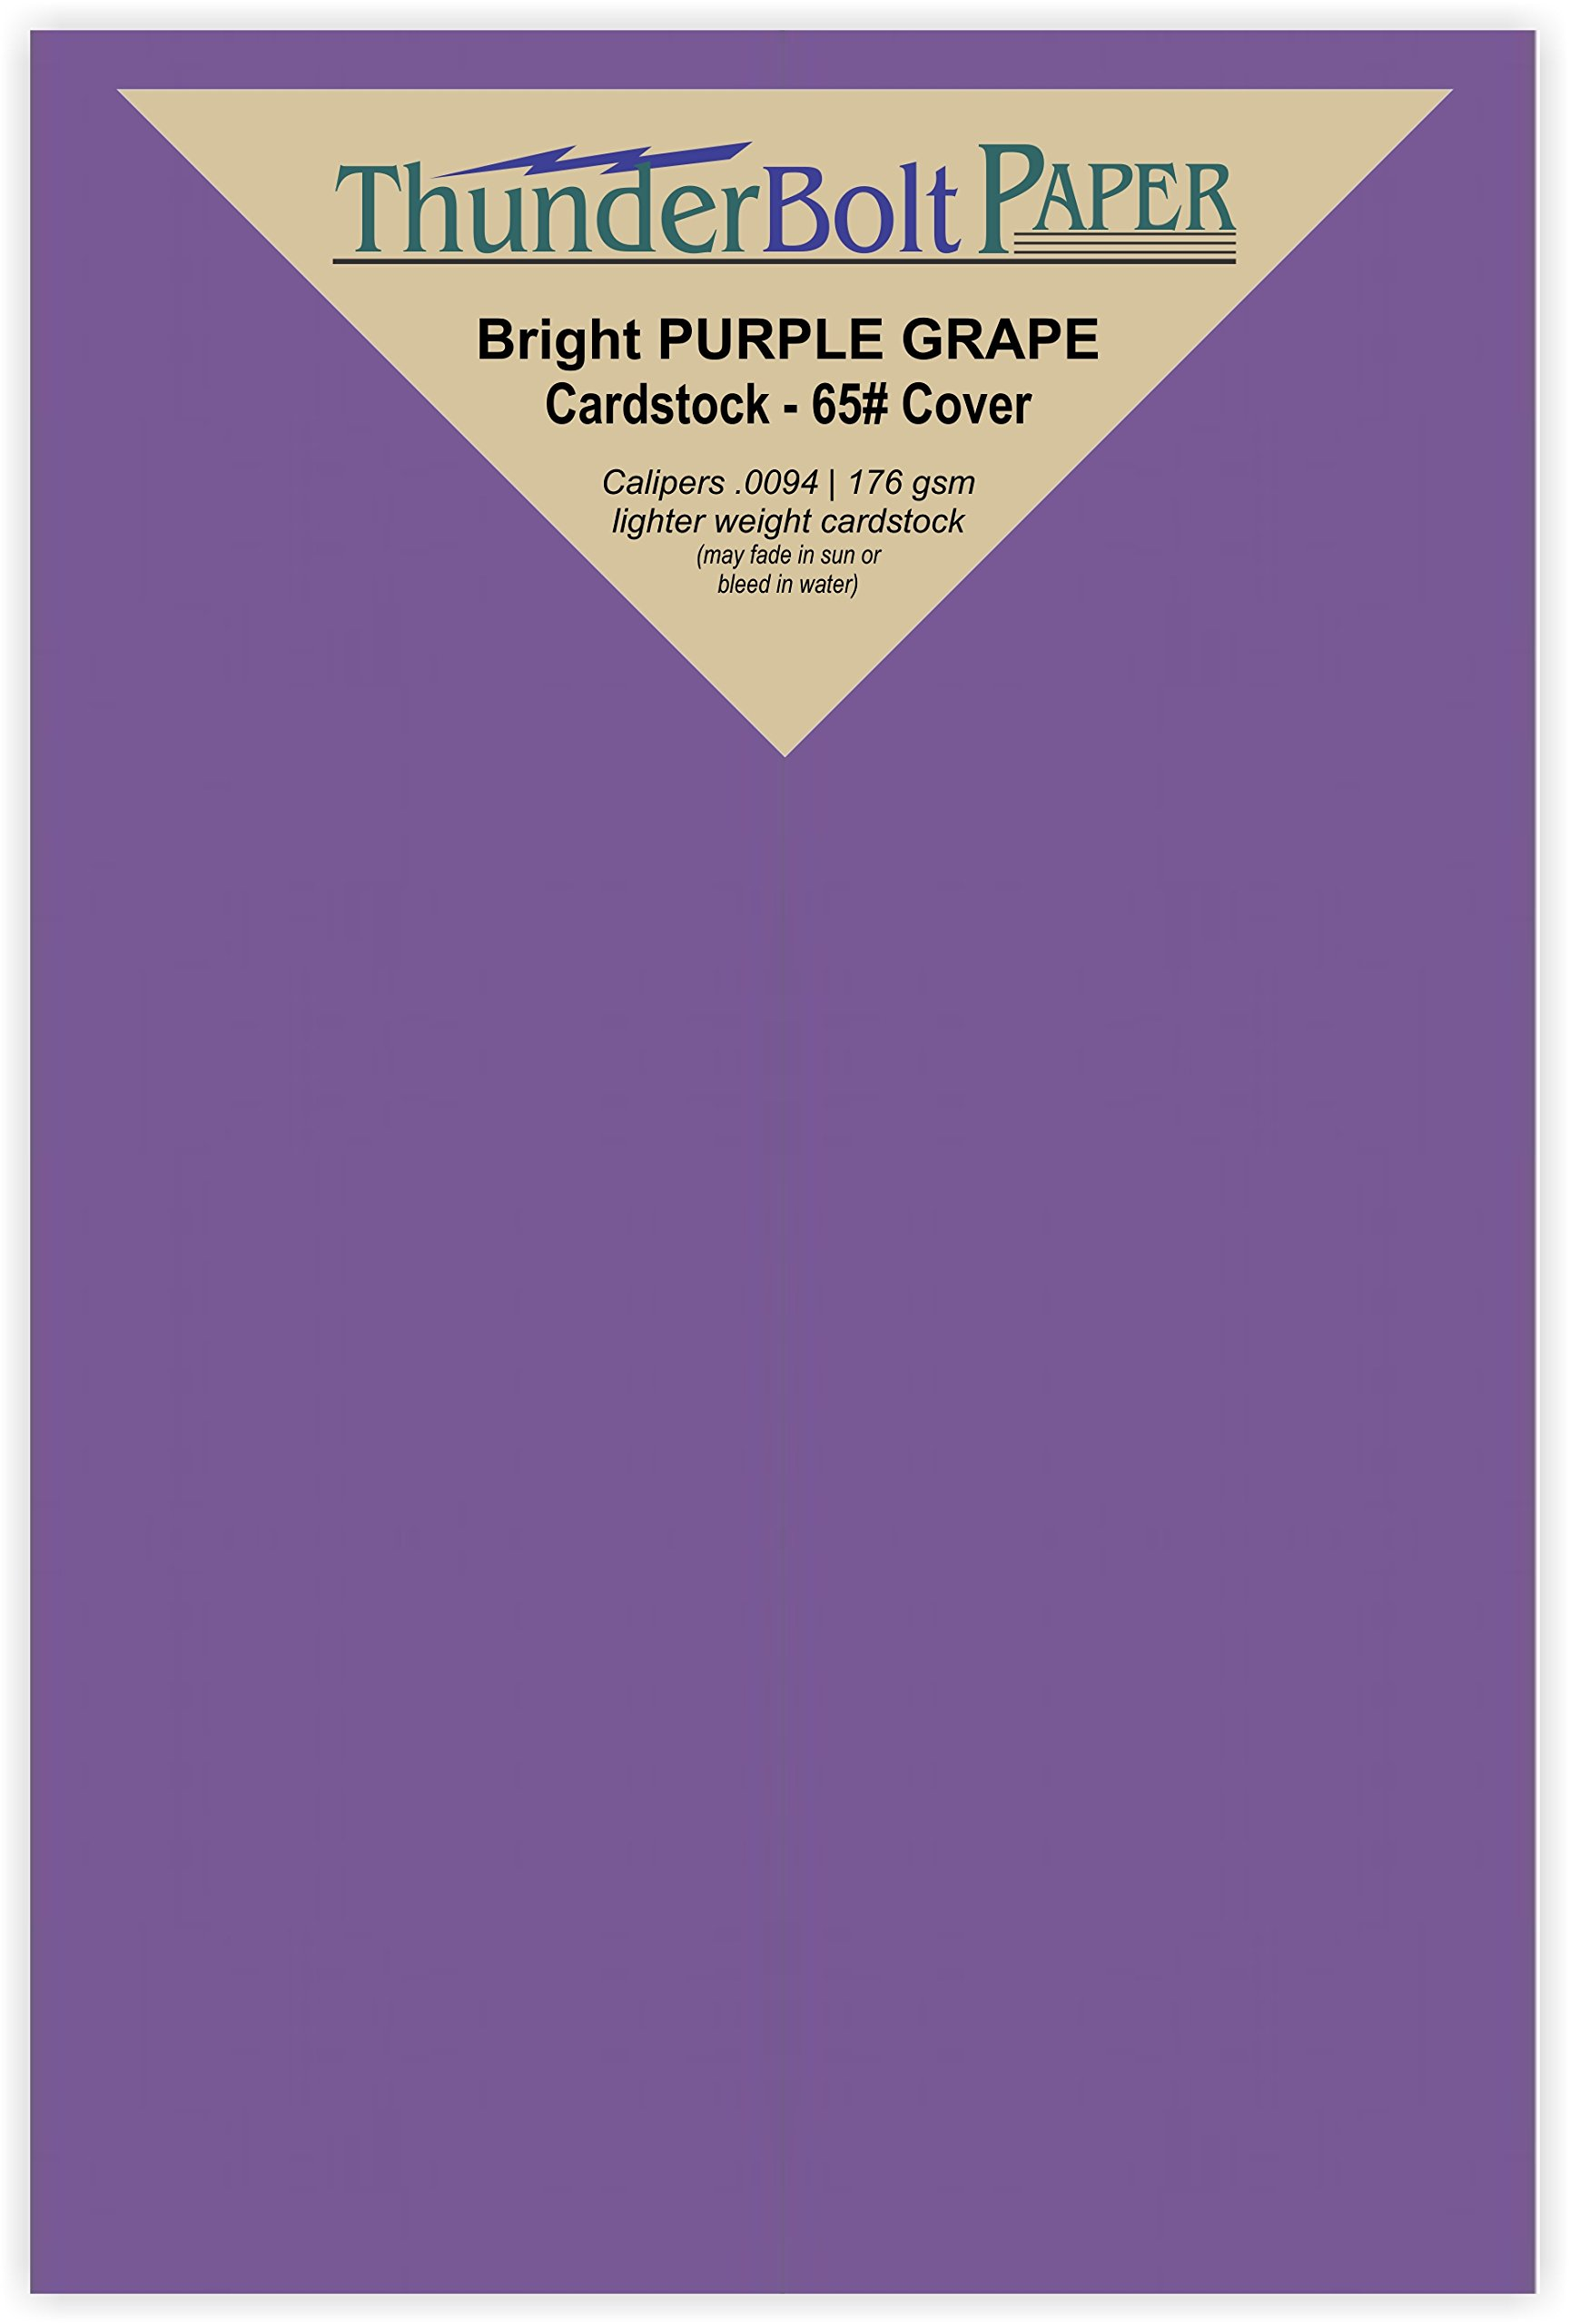 500 Bright Purple Grape 65# Cardstock Paper 3'' X 5'' (3X5 Inches) Index|Recipe Card|Photo|Frame Size - 65Cover/45Bond Light Weight Card Stock - Bright Printable Smooth Paper Surface